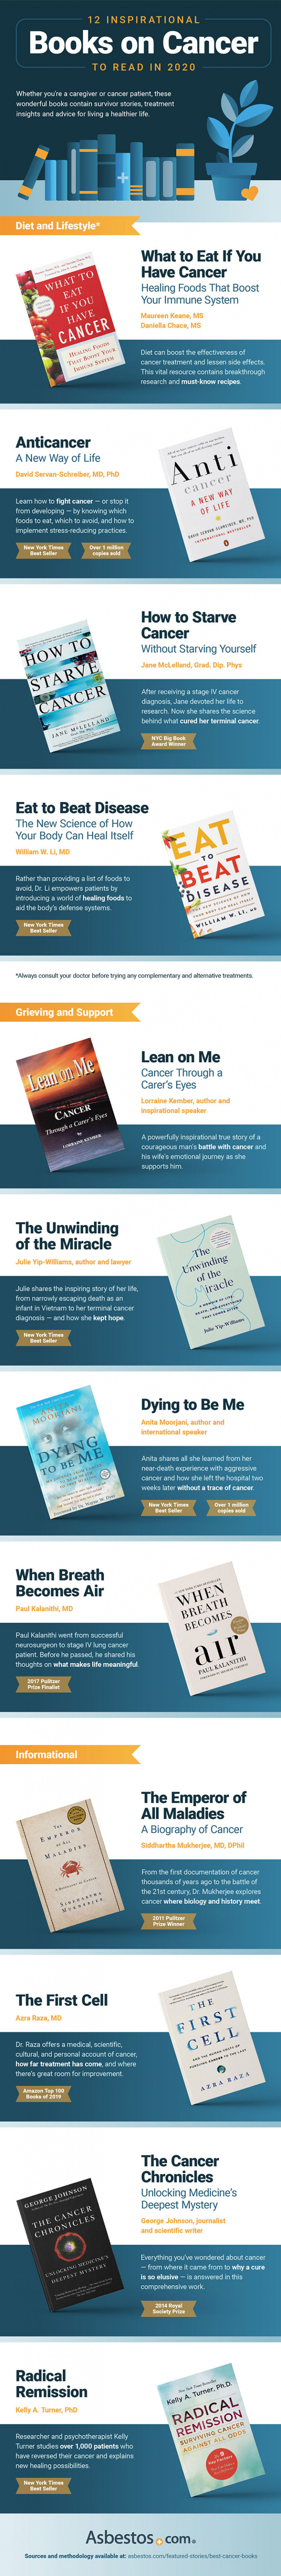 Infographic of books on cancer